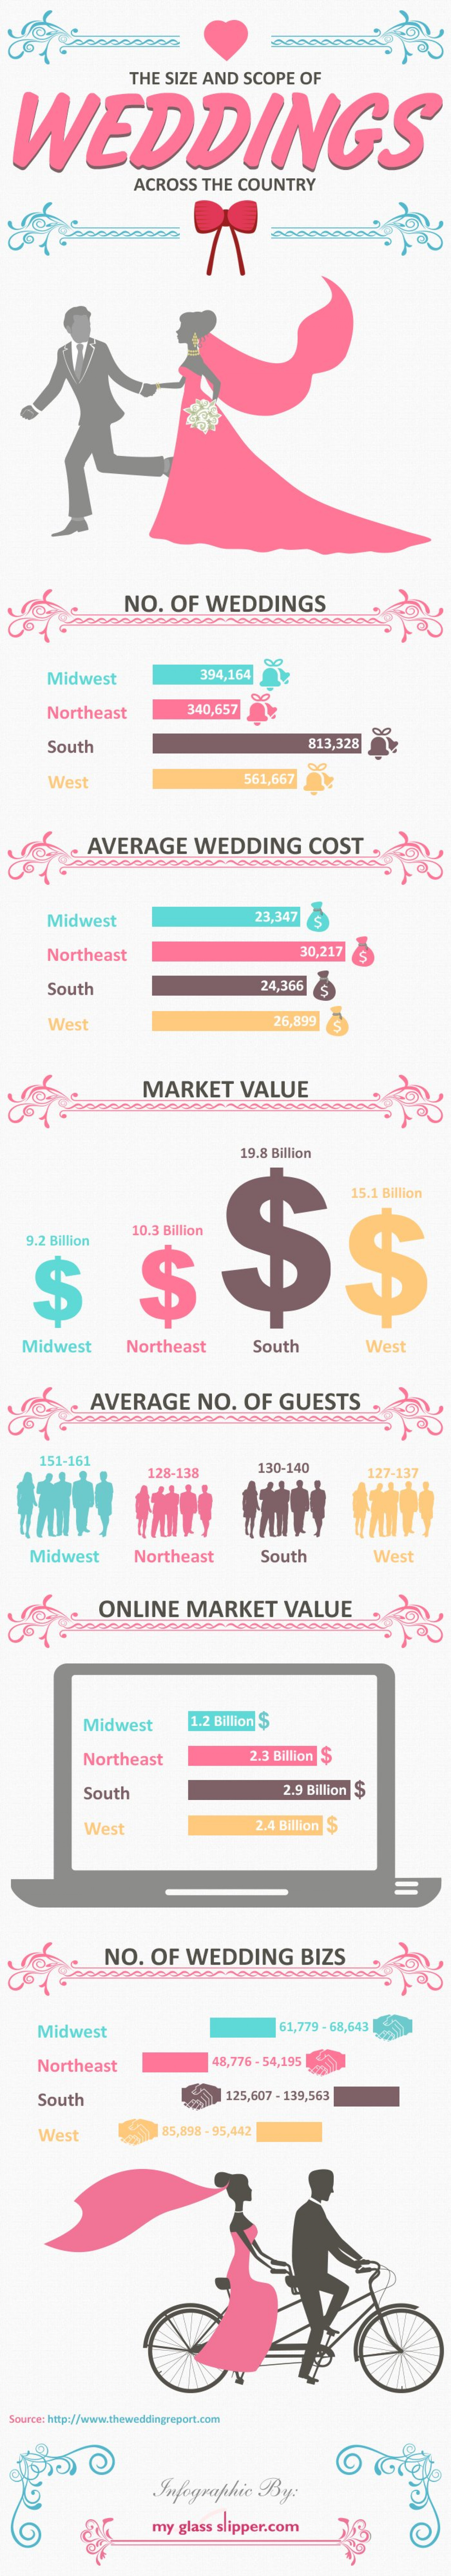 size and scope of wedding across united states Infographic